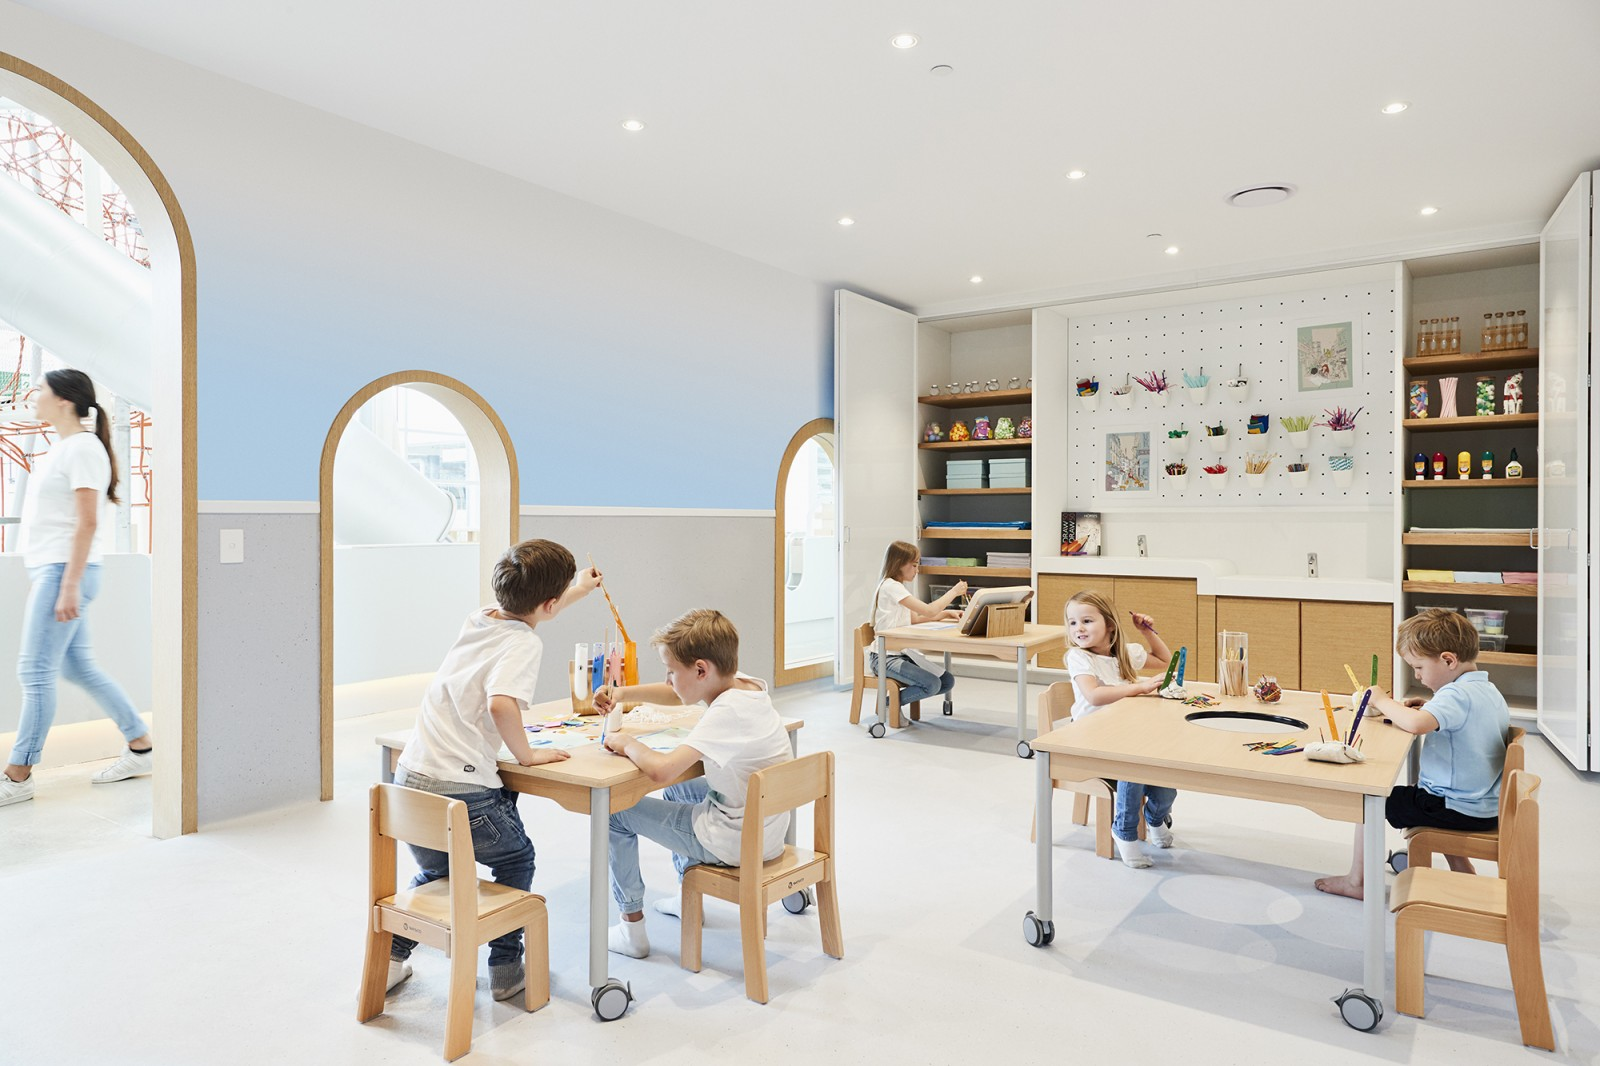 Sydney kids photographer Michelle Young photographs Sydney newest childrens kids play centre in Alexandria NSW Sydney. Michelle Young from Lantern Studio photographed the latest advertising campaign...